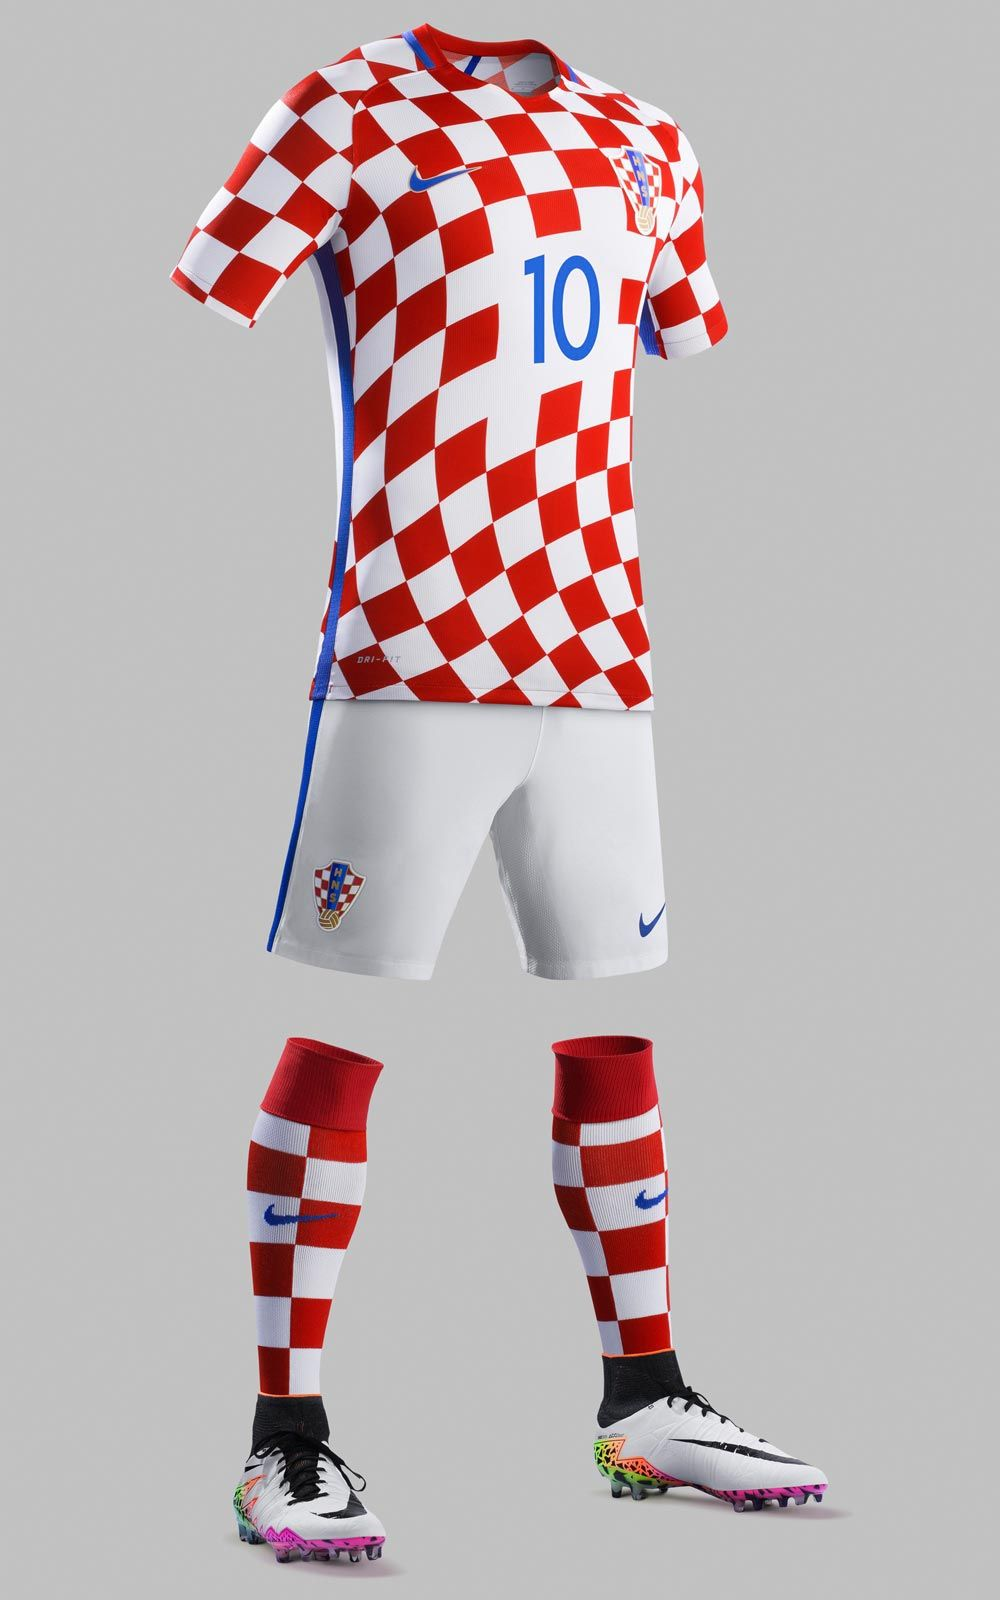 At last we see Croatia in their trademark checkerboard home kit! adddc8969a526